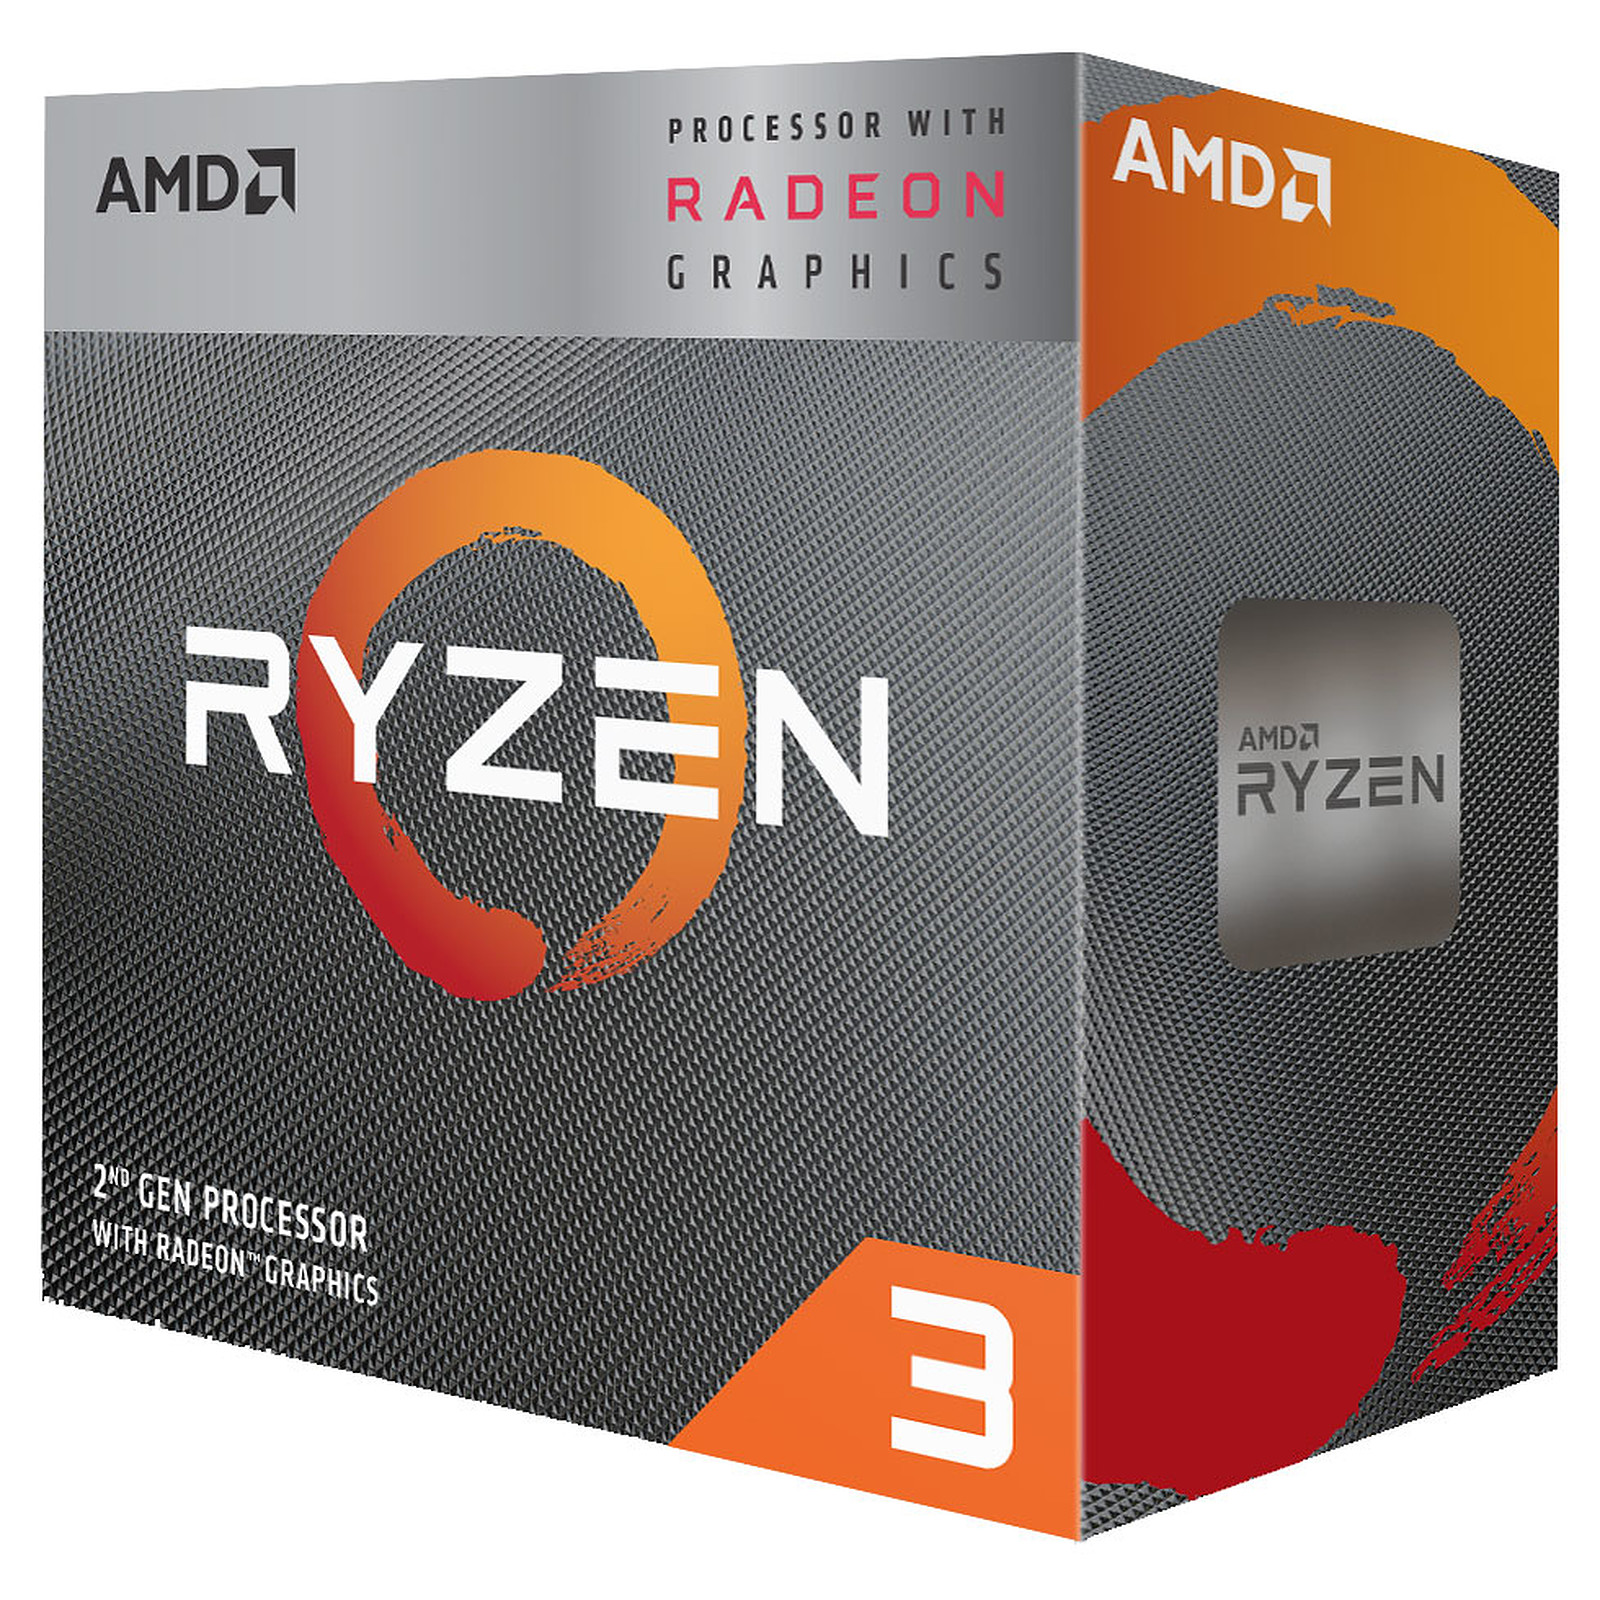 Processeur AMD 4 Core/4 Threads Socket AM4 Ryzen 3 3200G 6 Mo (Boîte, informatique ile de la Réunion, informatique-reunion.com